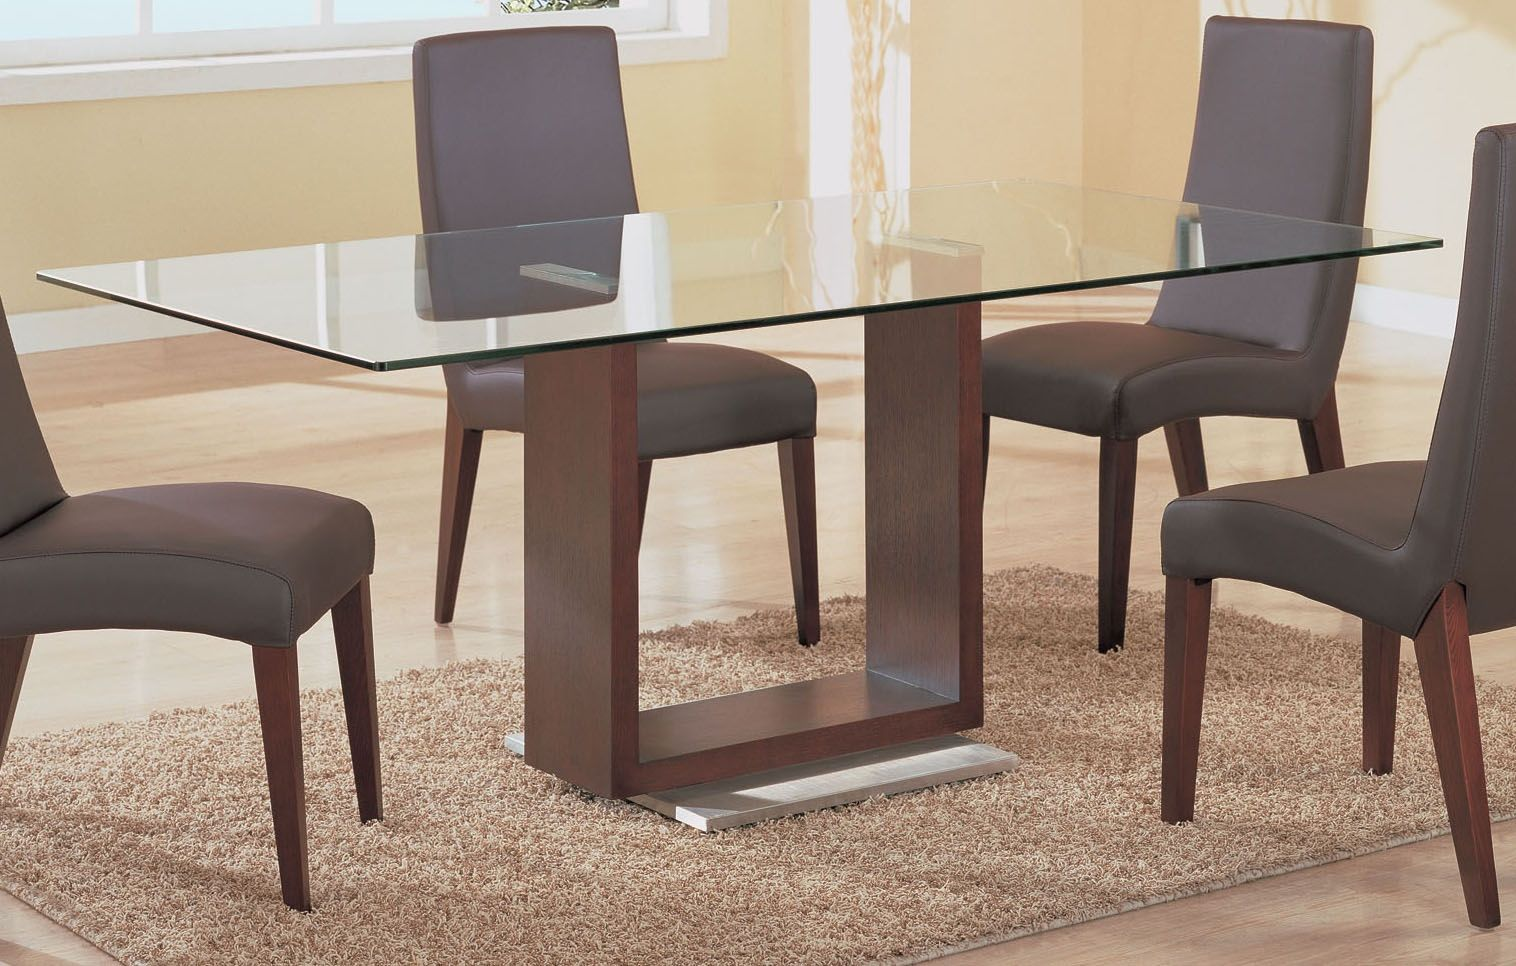 Modern dining table designs with glass top - Dining Table Bases For Glass Tops Roselawnlutheran